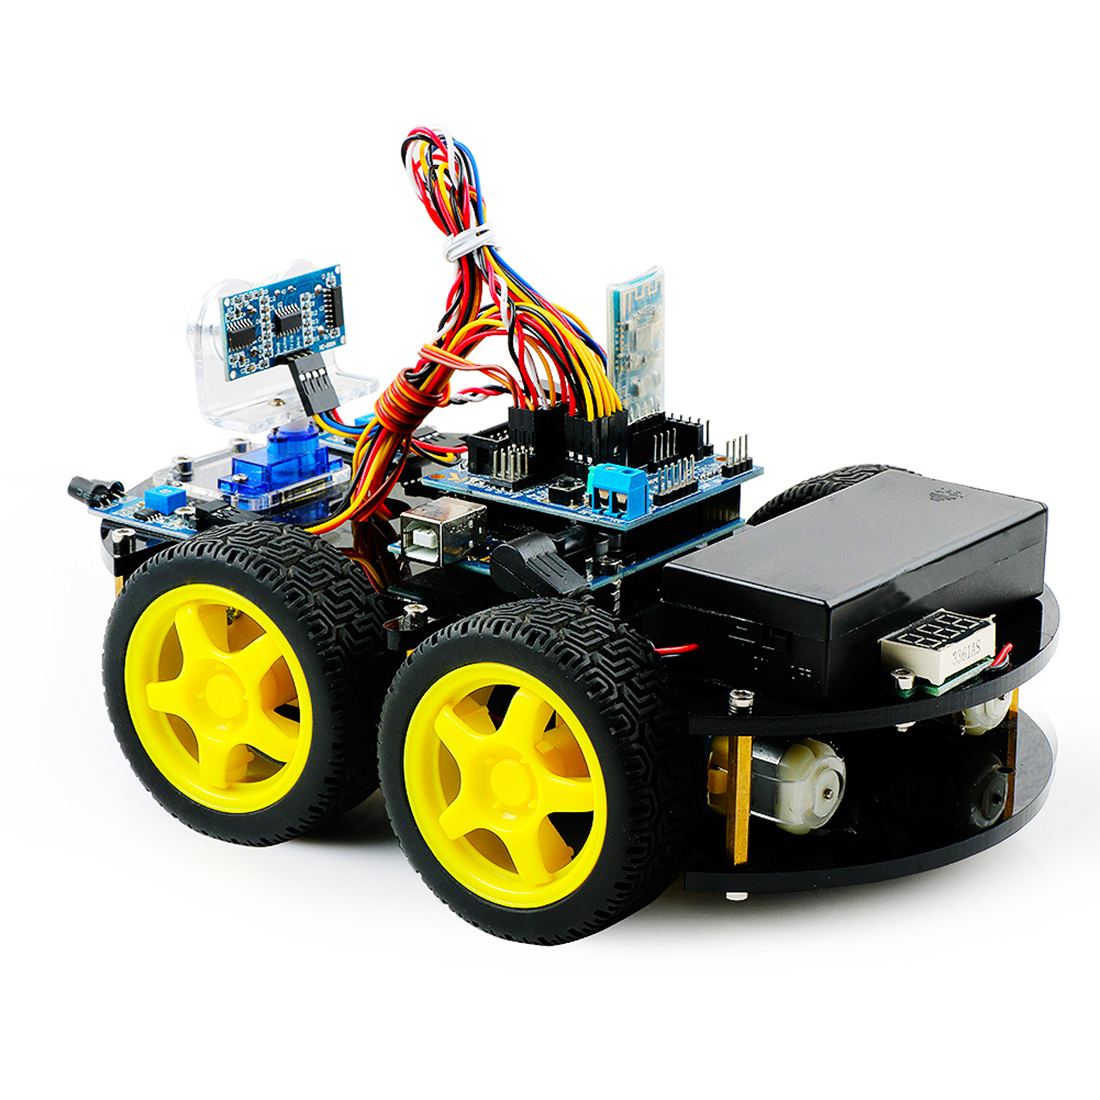 DIY Obstacle Avoidance Smart Programmable Robot Car Educational Learning Kit For Arduino UNO High Tech Toy For Christmas